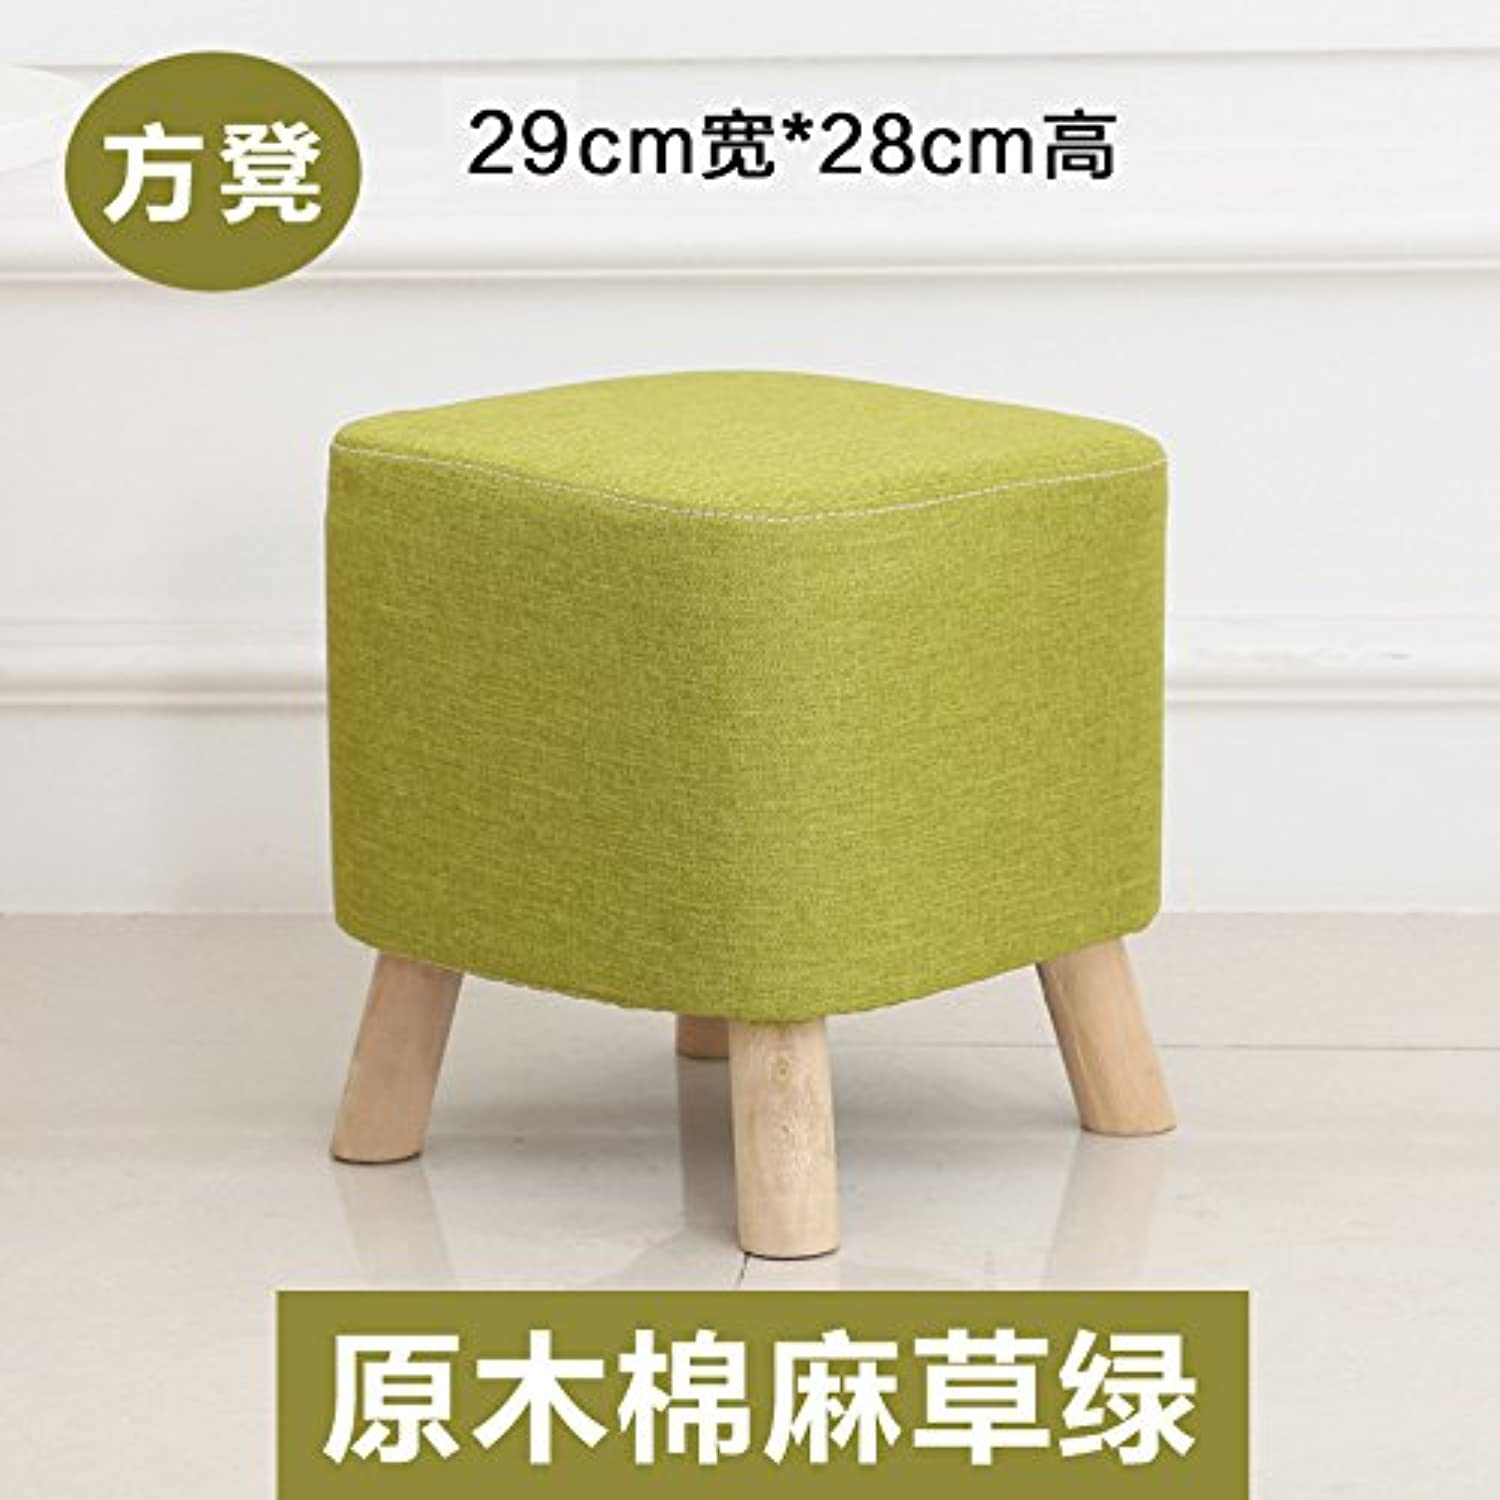 Dana Carrie Cloth sofas stools for shoes is simple and creative fashion round stool solid wood fabrics, D.